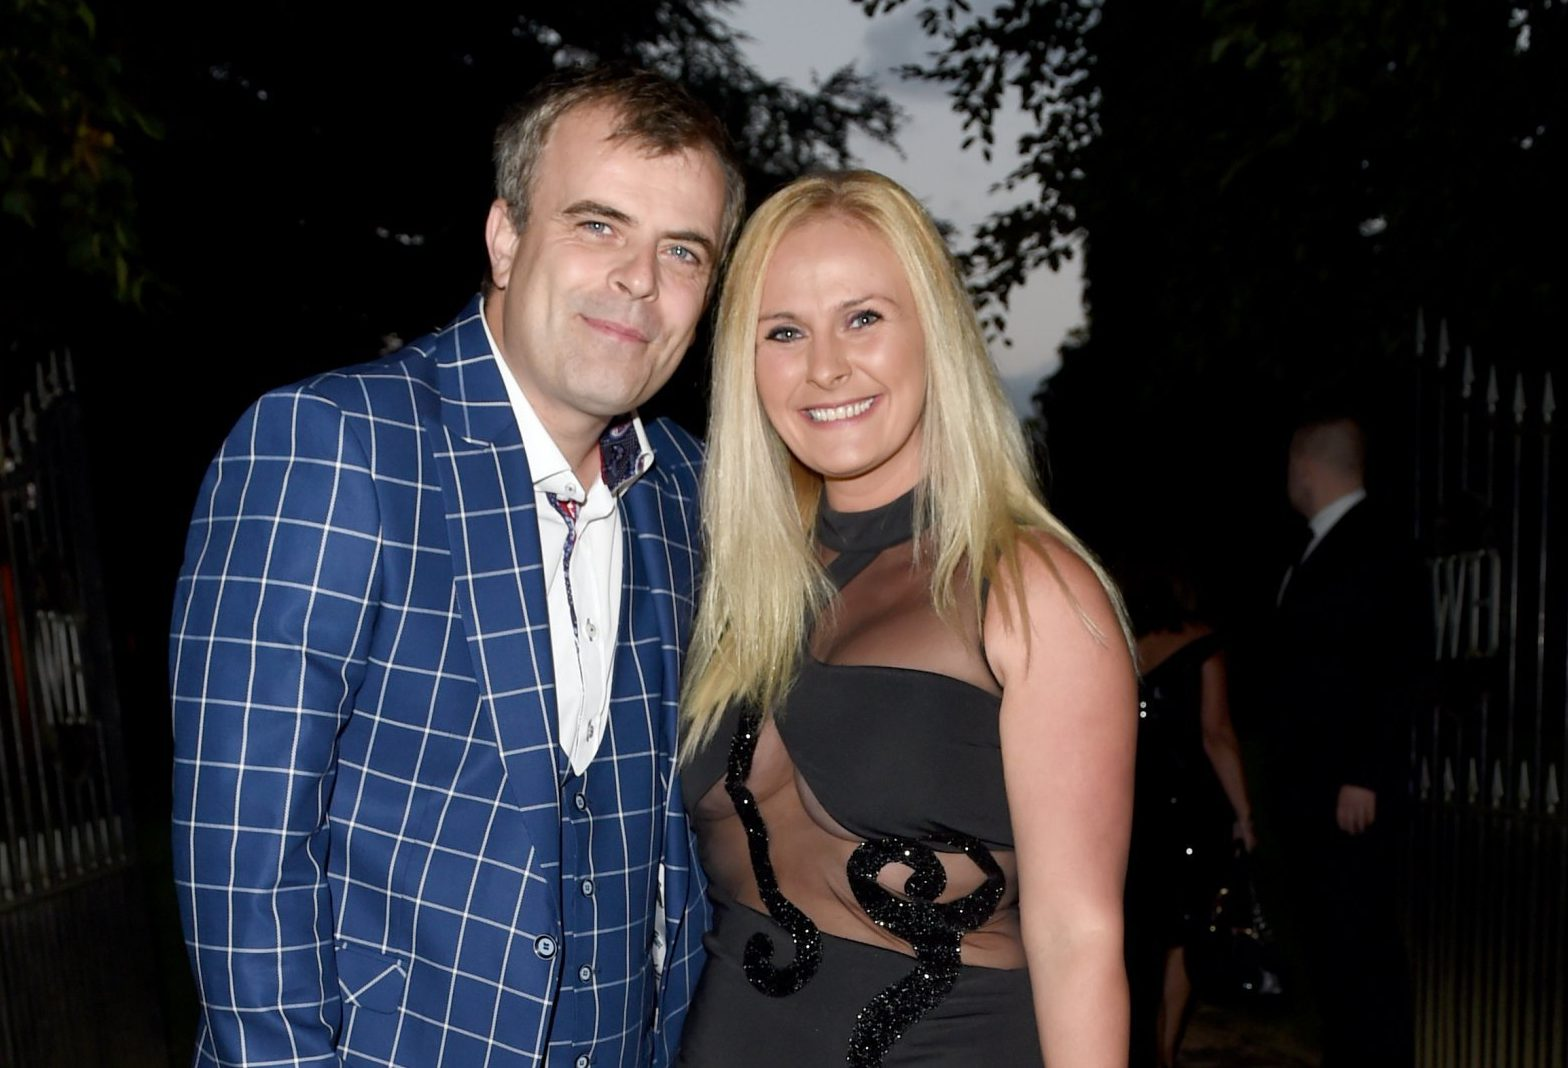 Simon Gregson has been left horrified at the shock attack on his wife